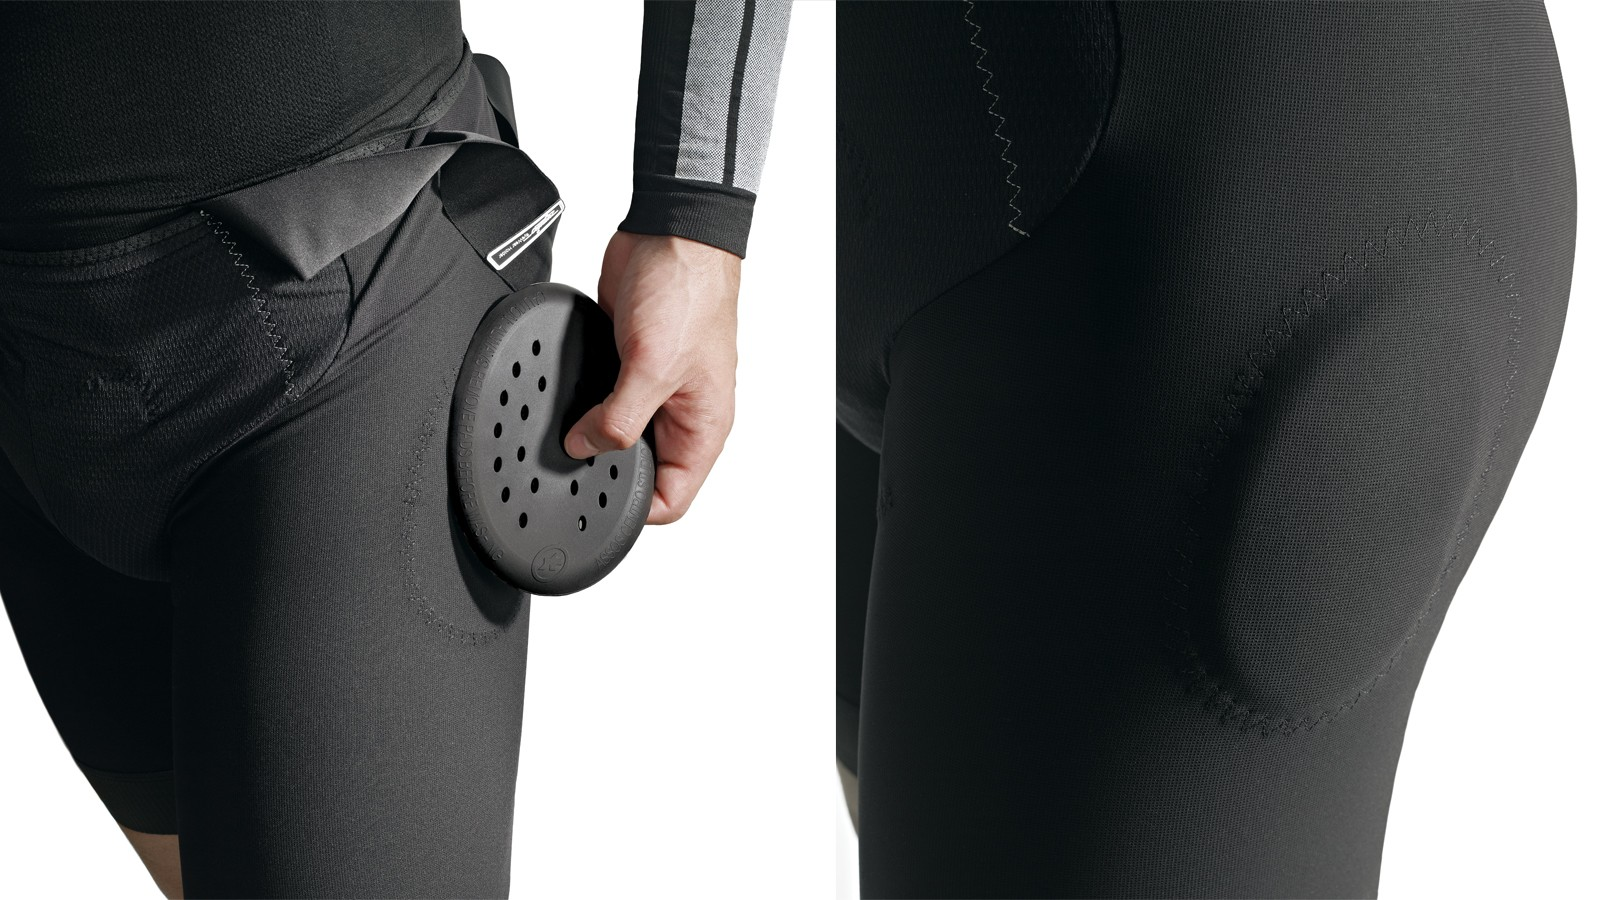 T.Rally Shorts_s7 bib shorts have removable hip pads made from polyurethane foam